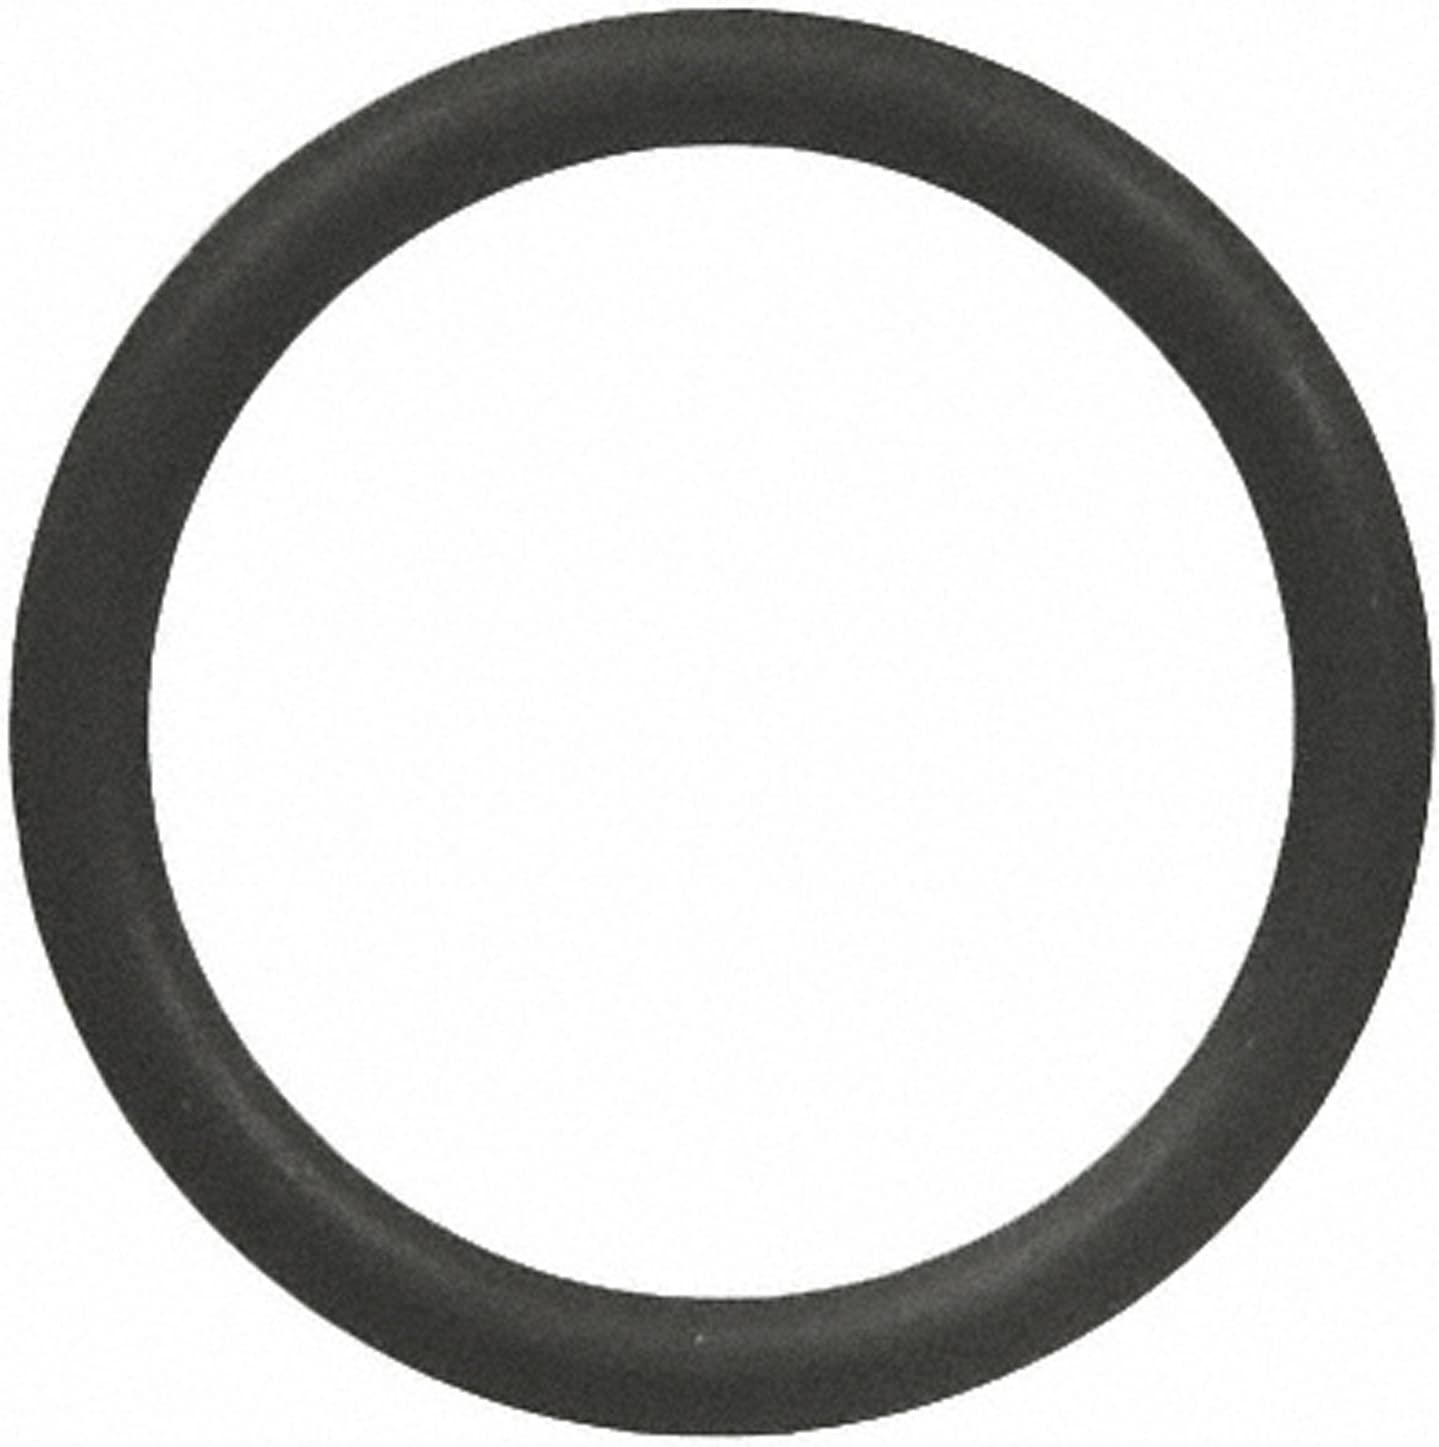 Excellent Ranking TOP16 Fel-Pro 420 O-ring